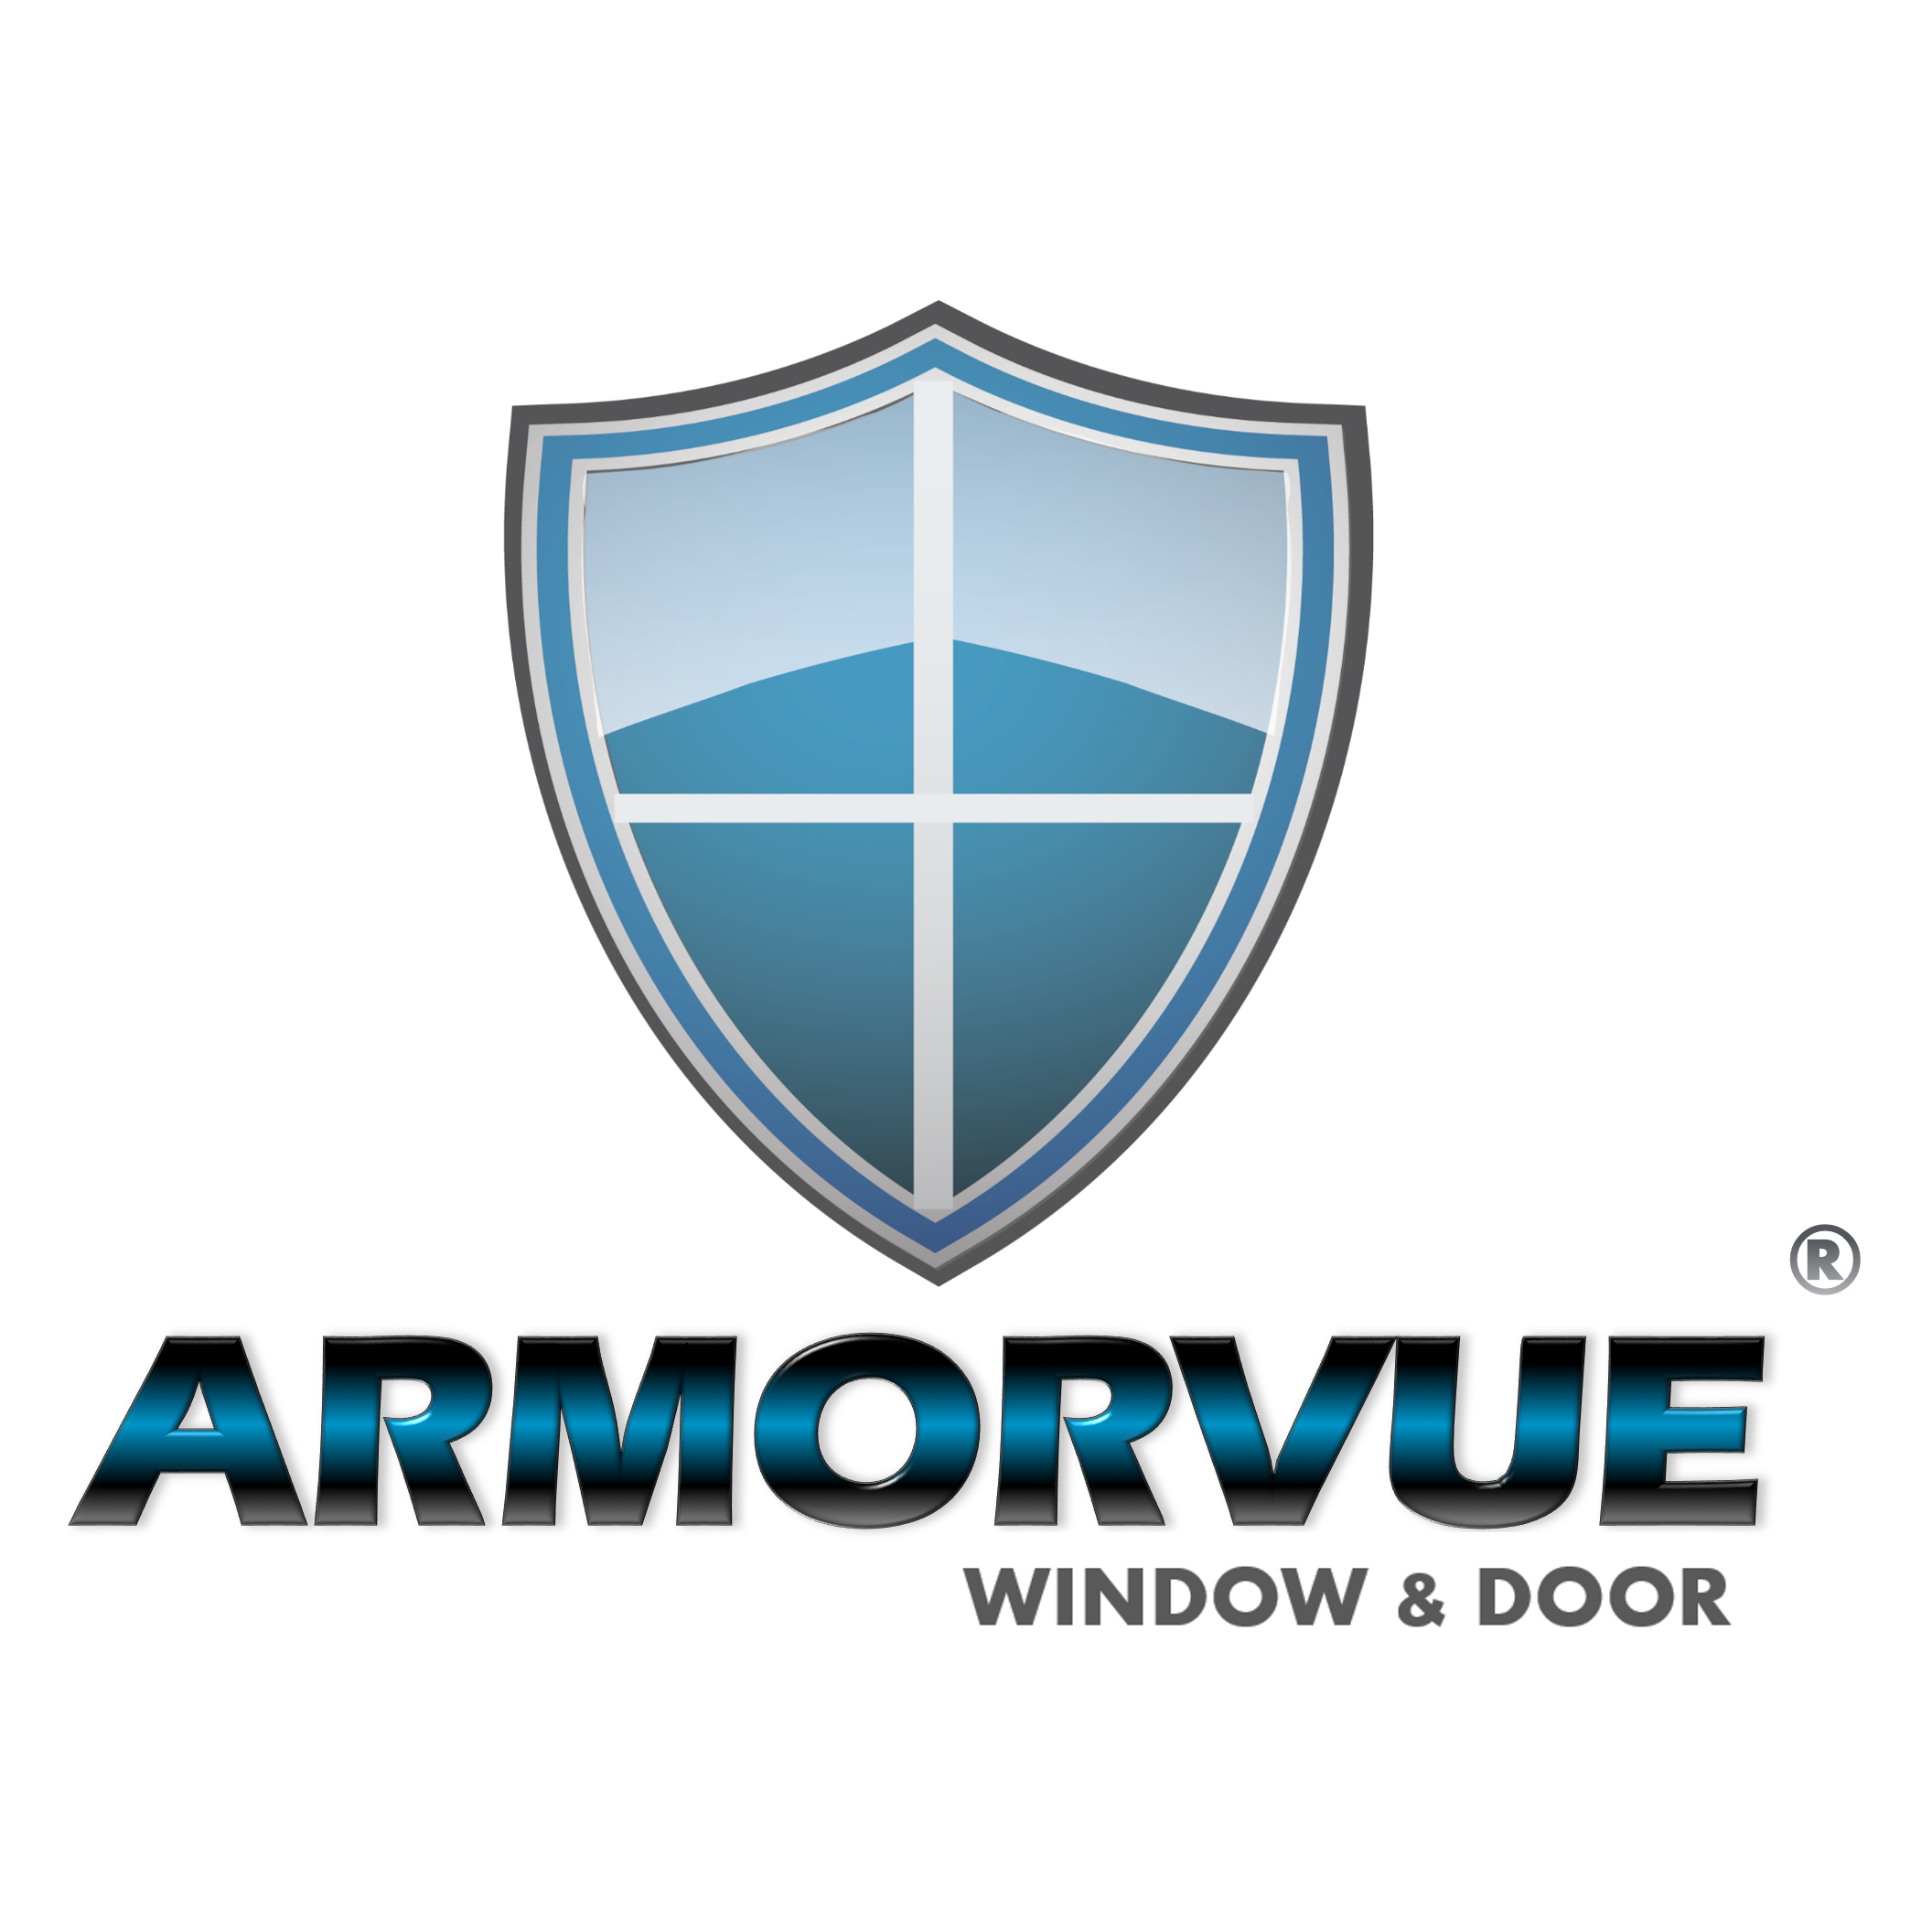 ARMORVUE Window & Door image 0